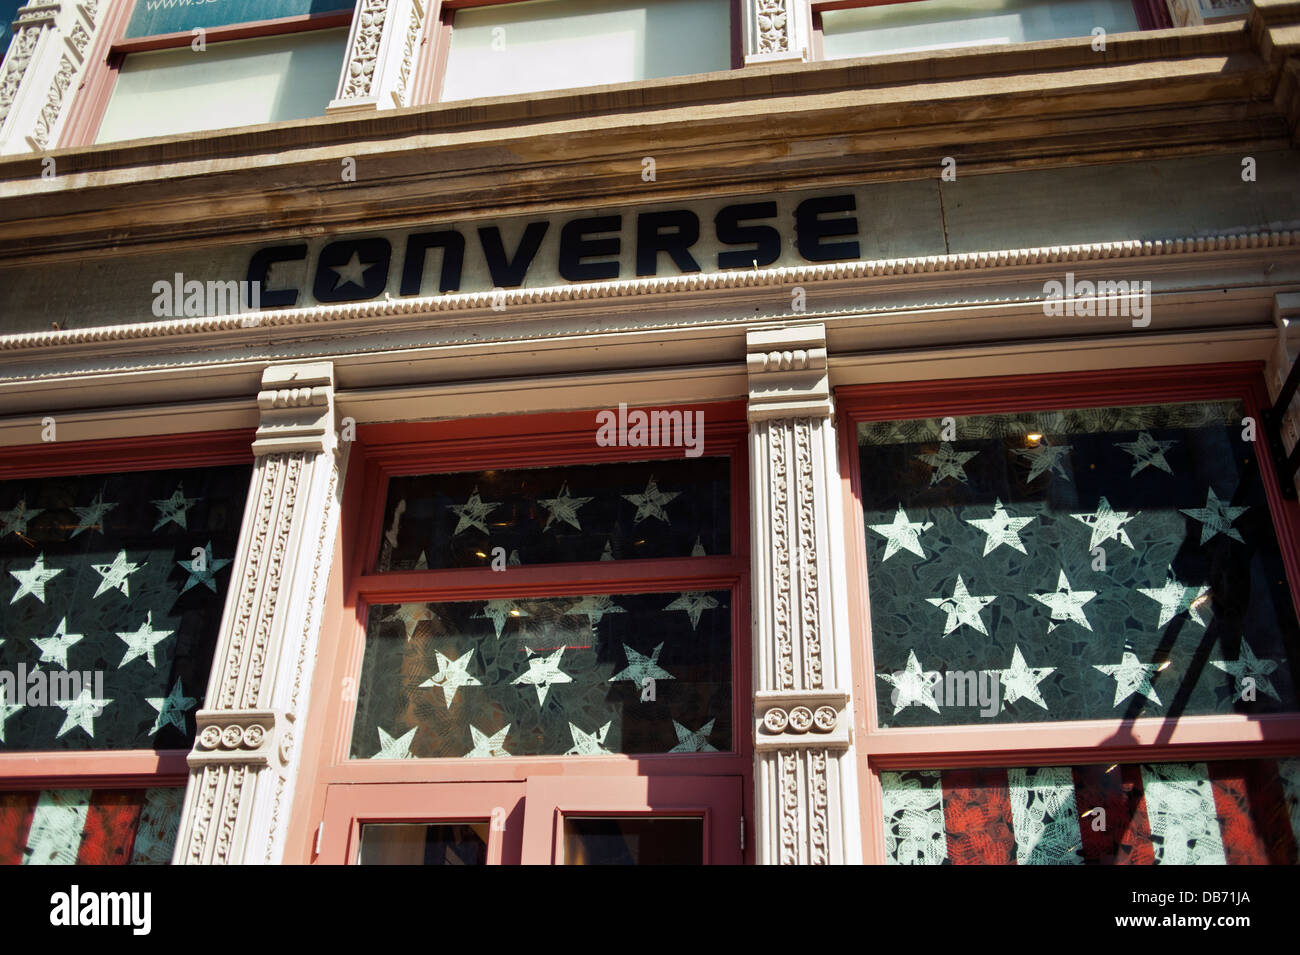 The Converse shoe store in New York City - Stock Image